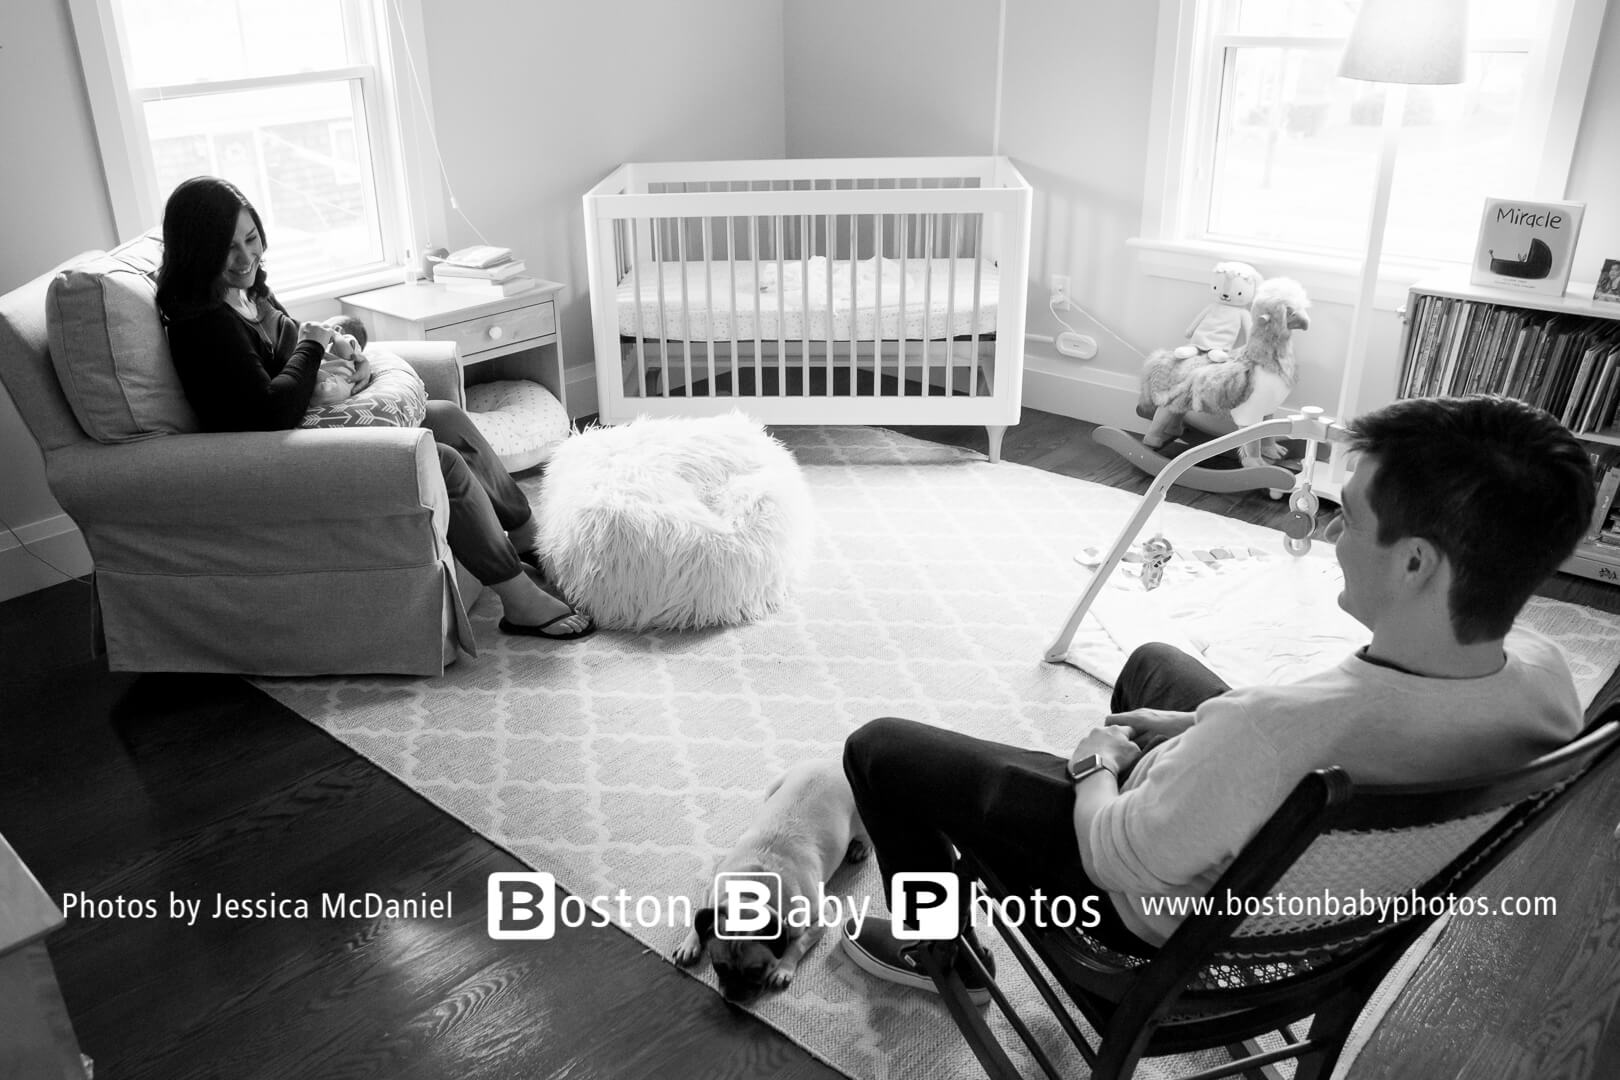 Milton, MA: A sweet new baby girl photoshoot